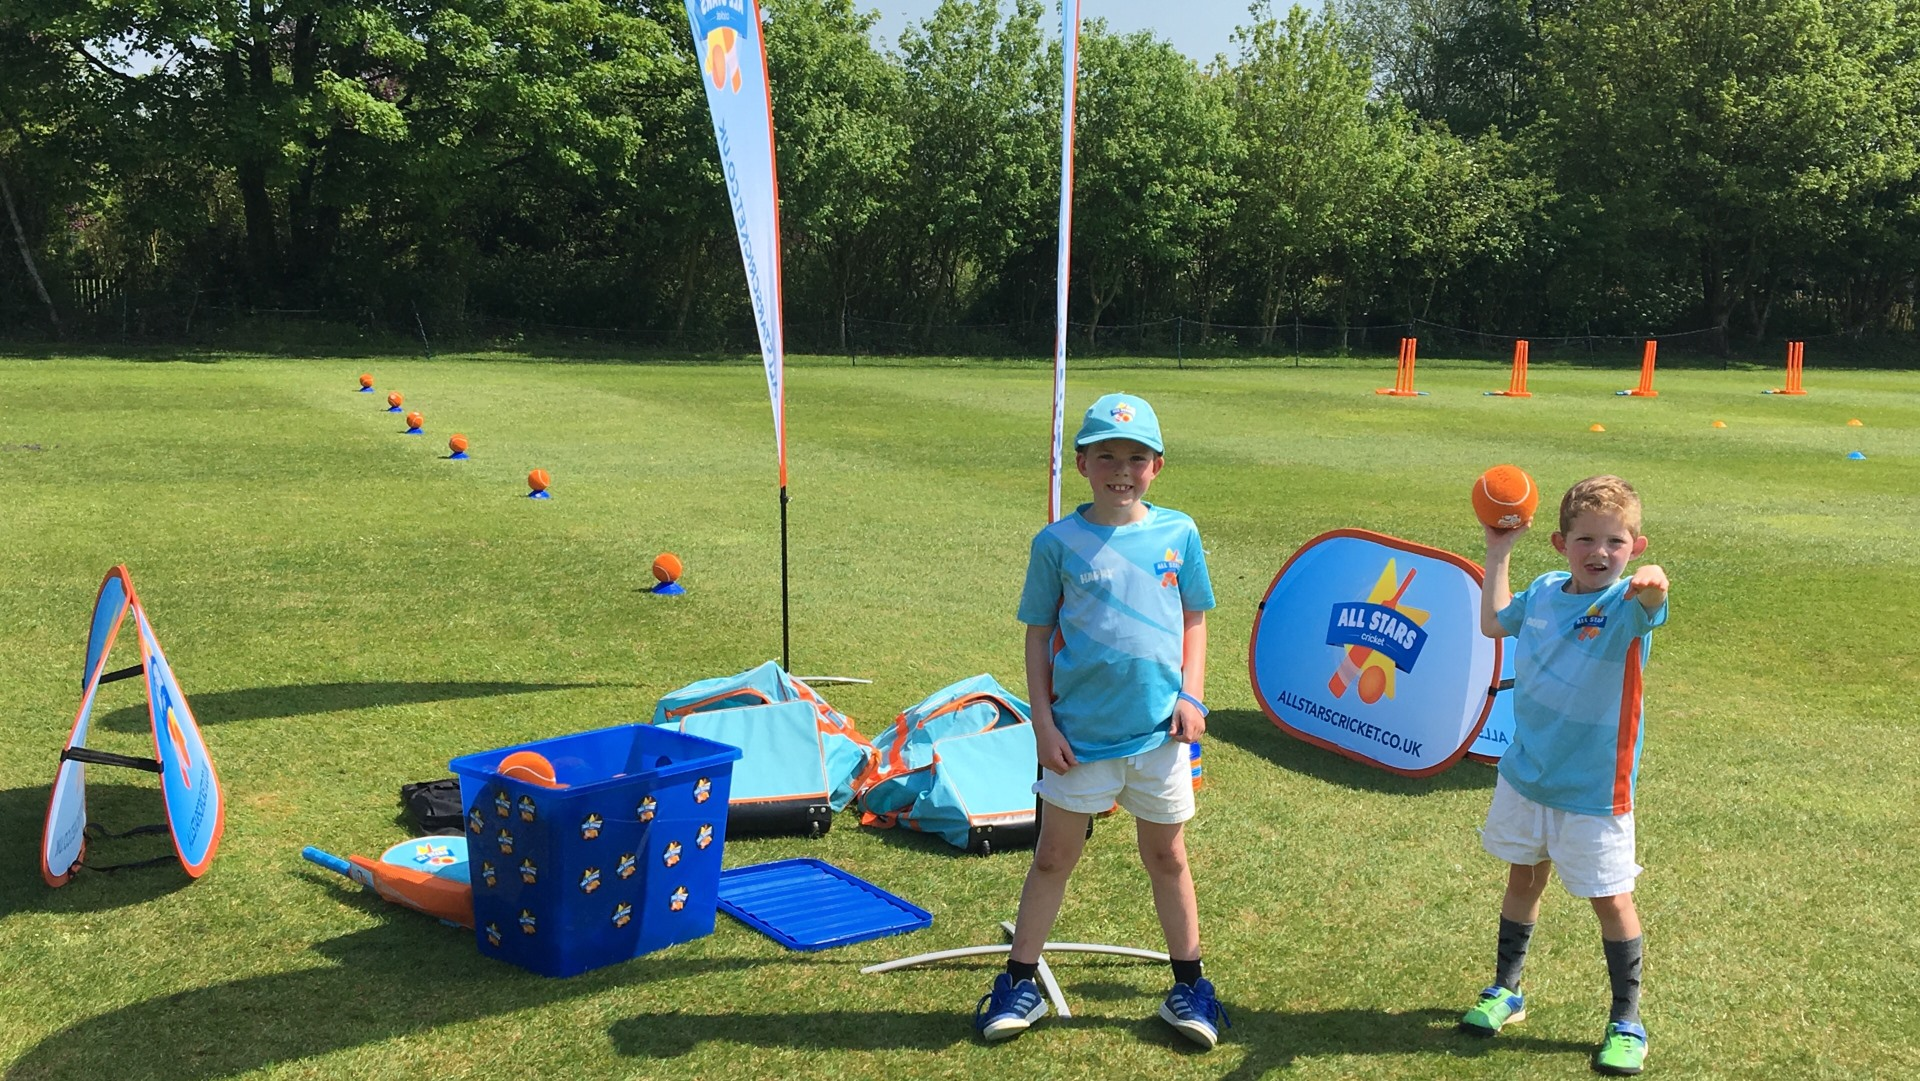 2000 kids signed up ahead of All Stars launch